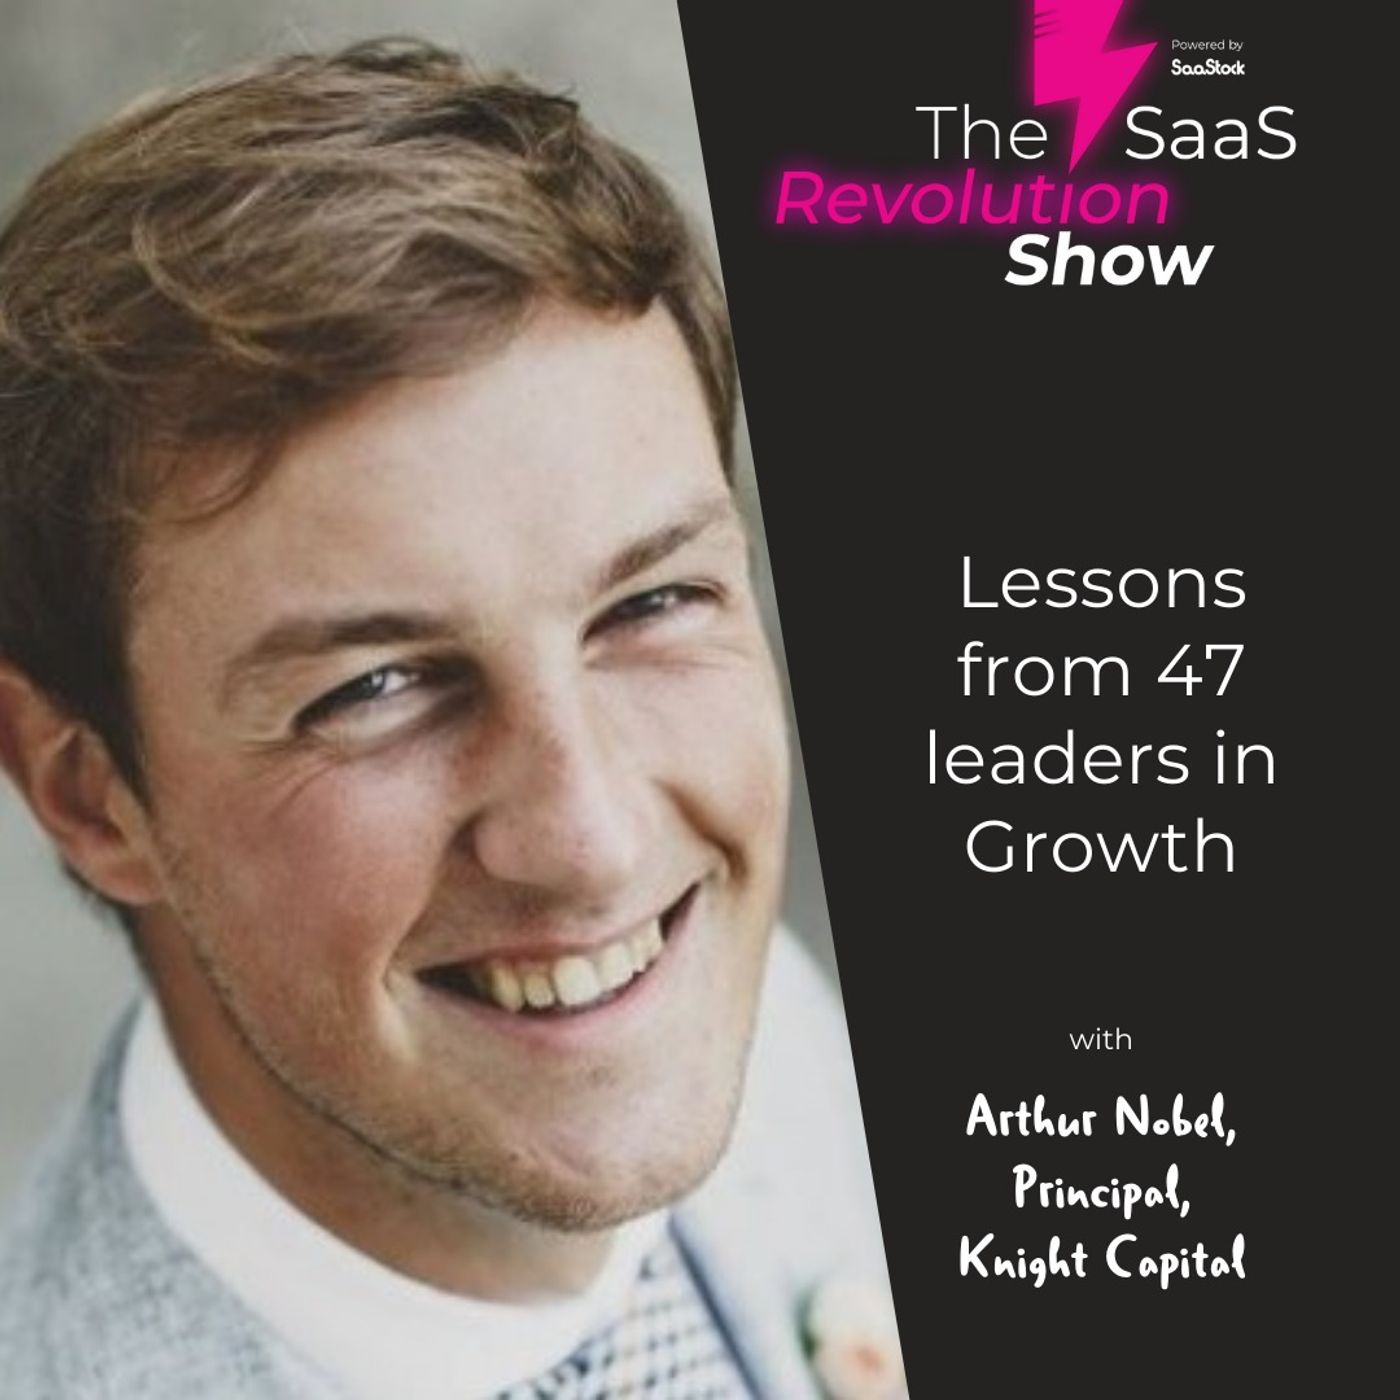 Lessons from 47 leaders in Growth, with Arthur Nobel (Knight Capital)